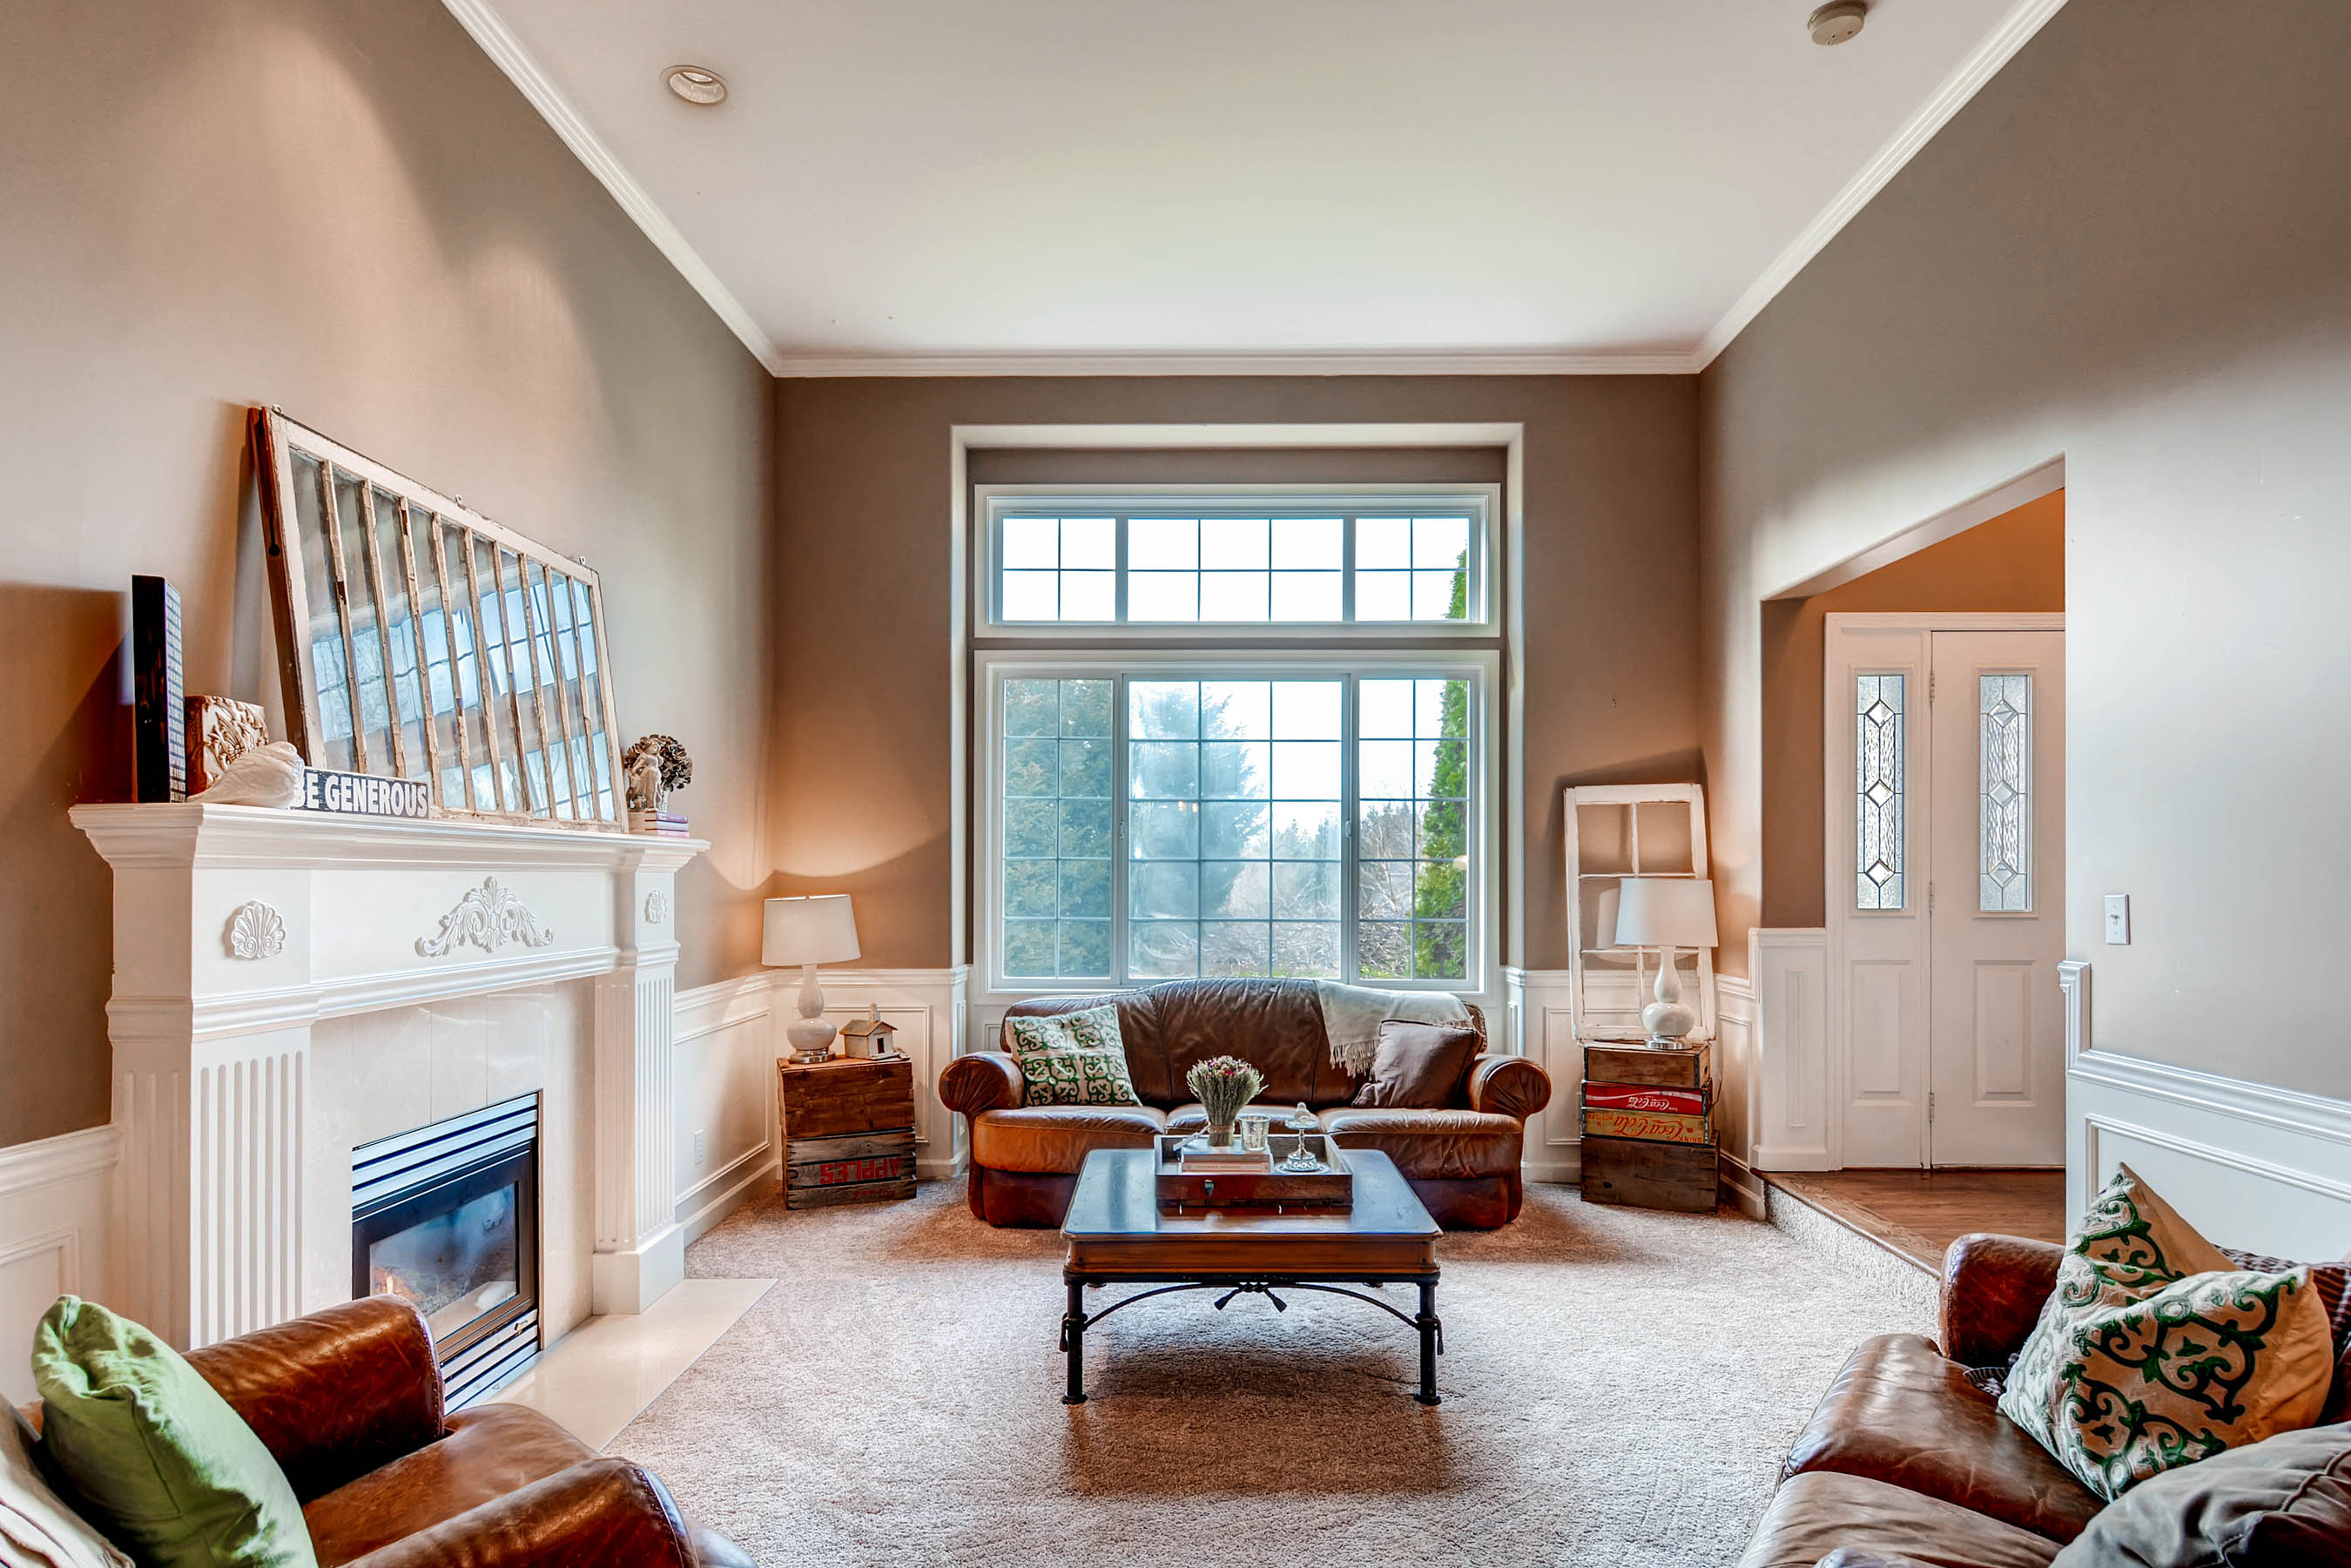 Elegant country home for sale in snohomish wa for Elegant country homes